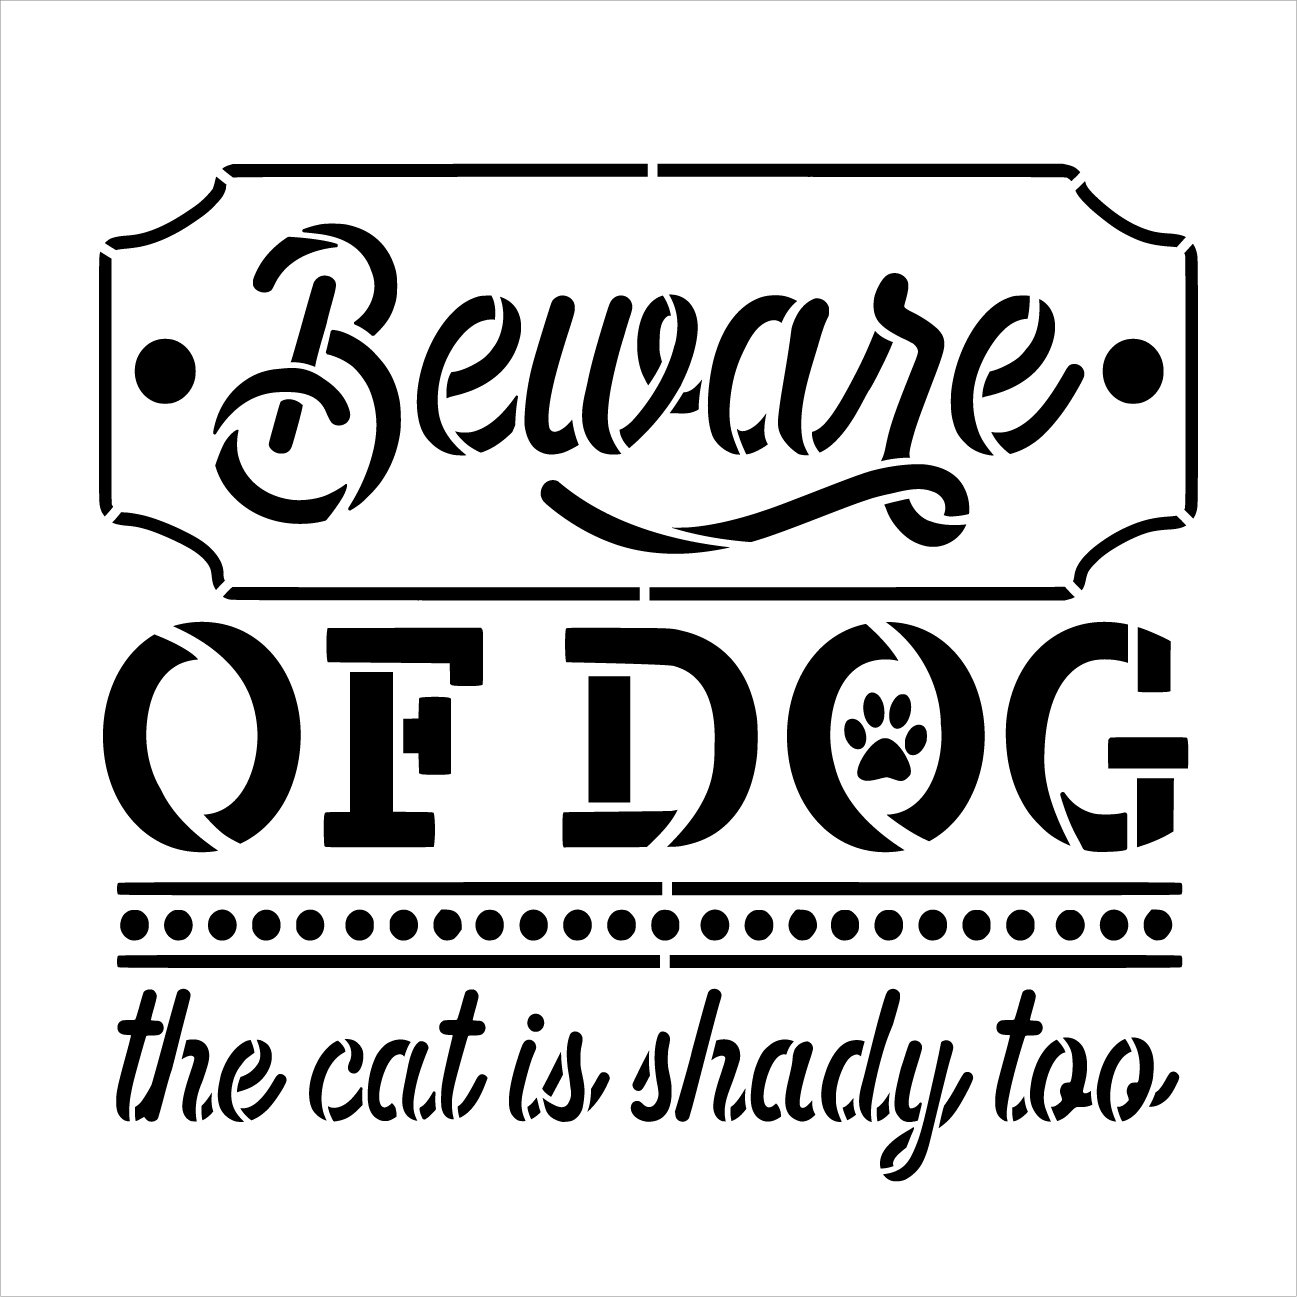 Beware of Dog - Cat is Shady Too Stencil by StudioR12 | Craft DIY Funny Pet Pawprint Home Decor | Paint Wood Sign | Reusable Mylar Template | Select Size